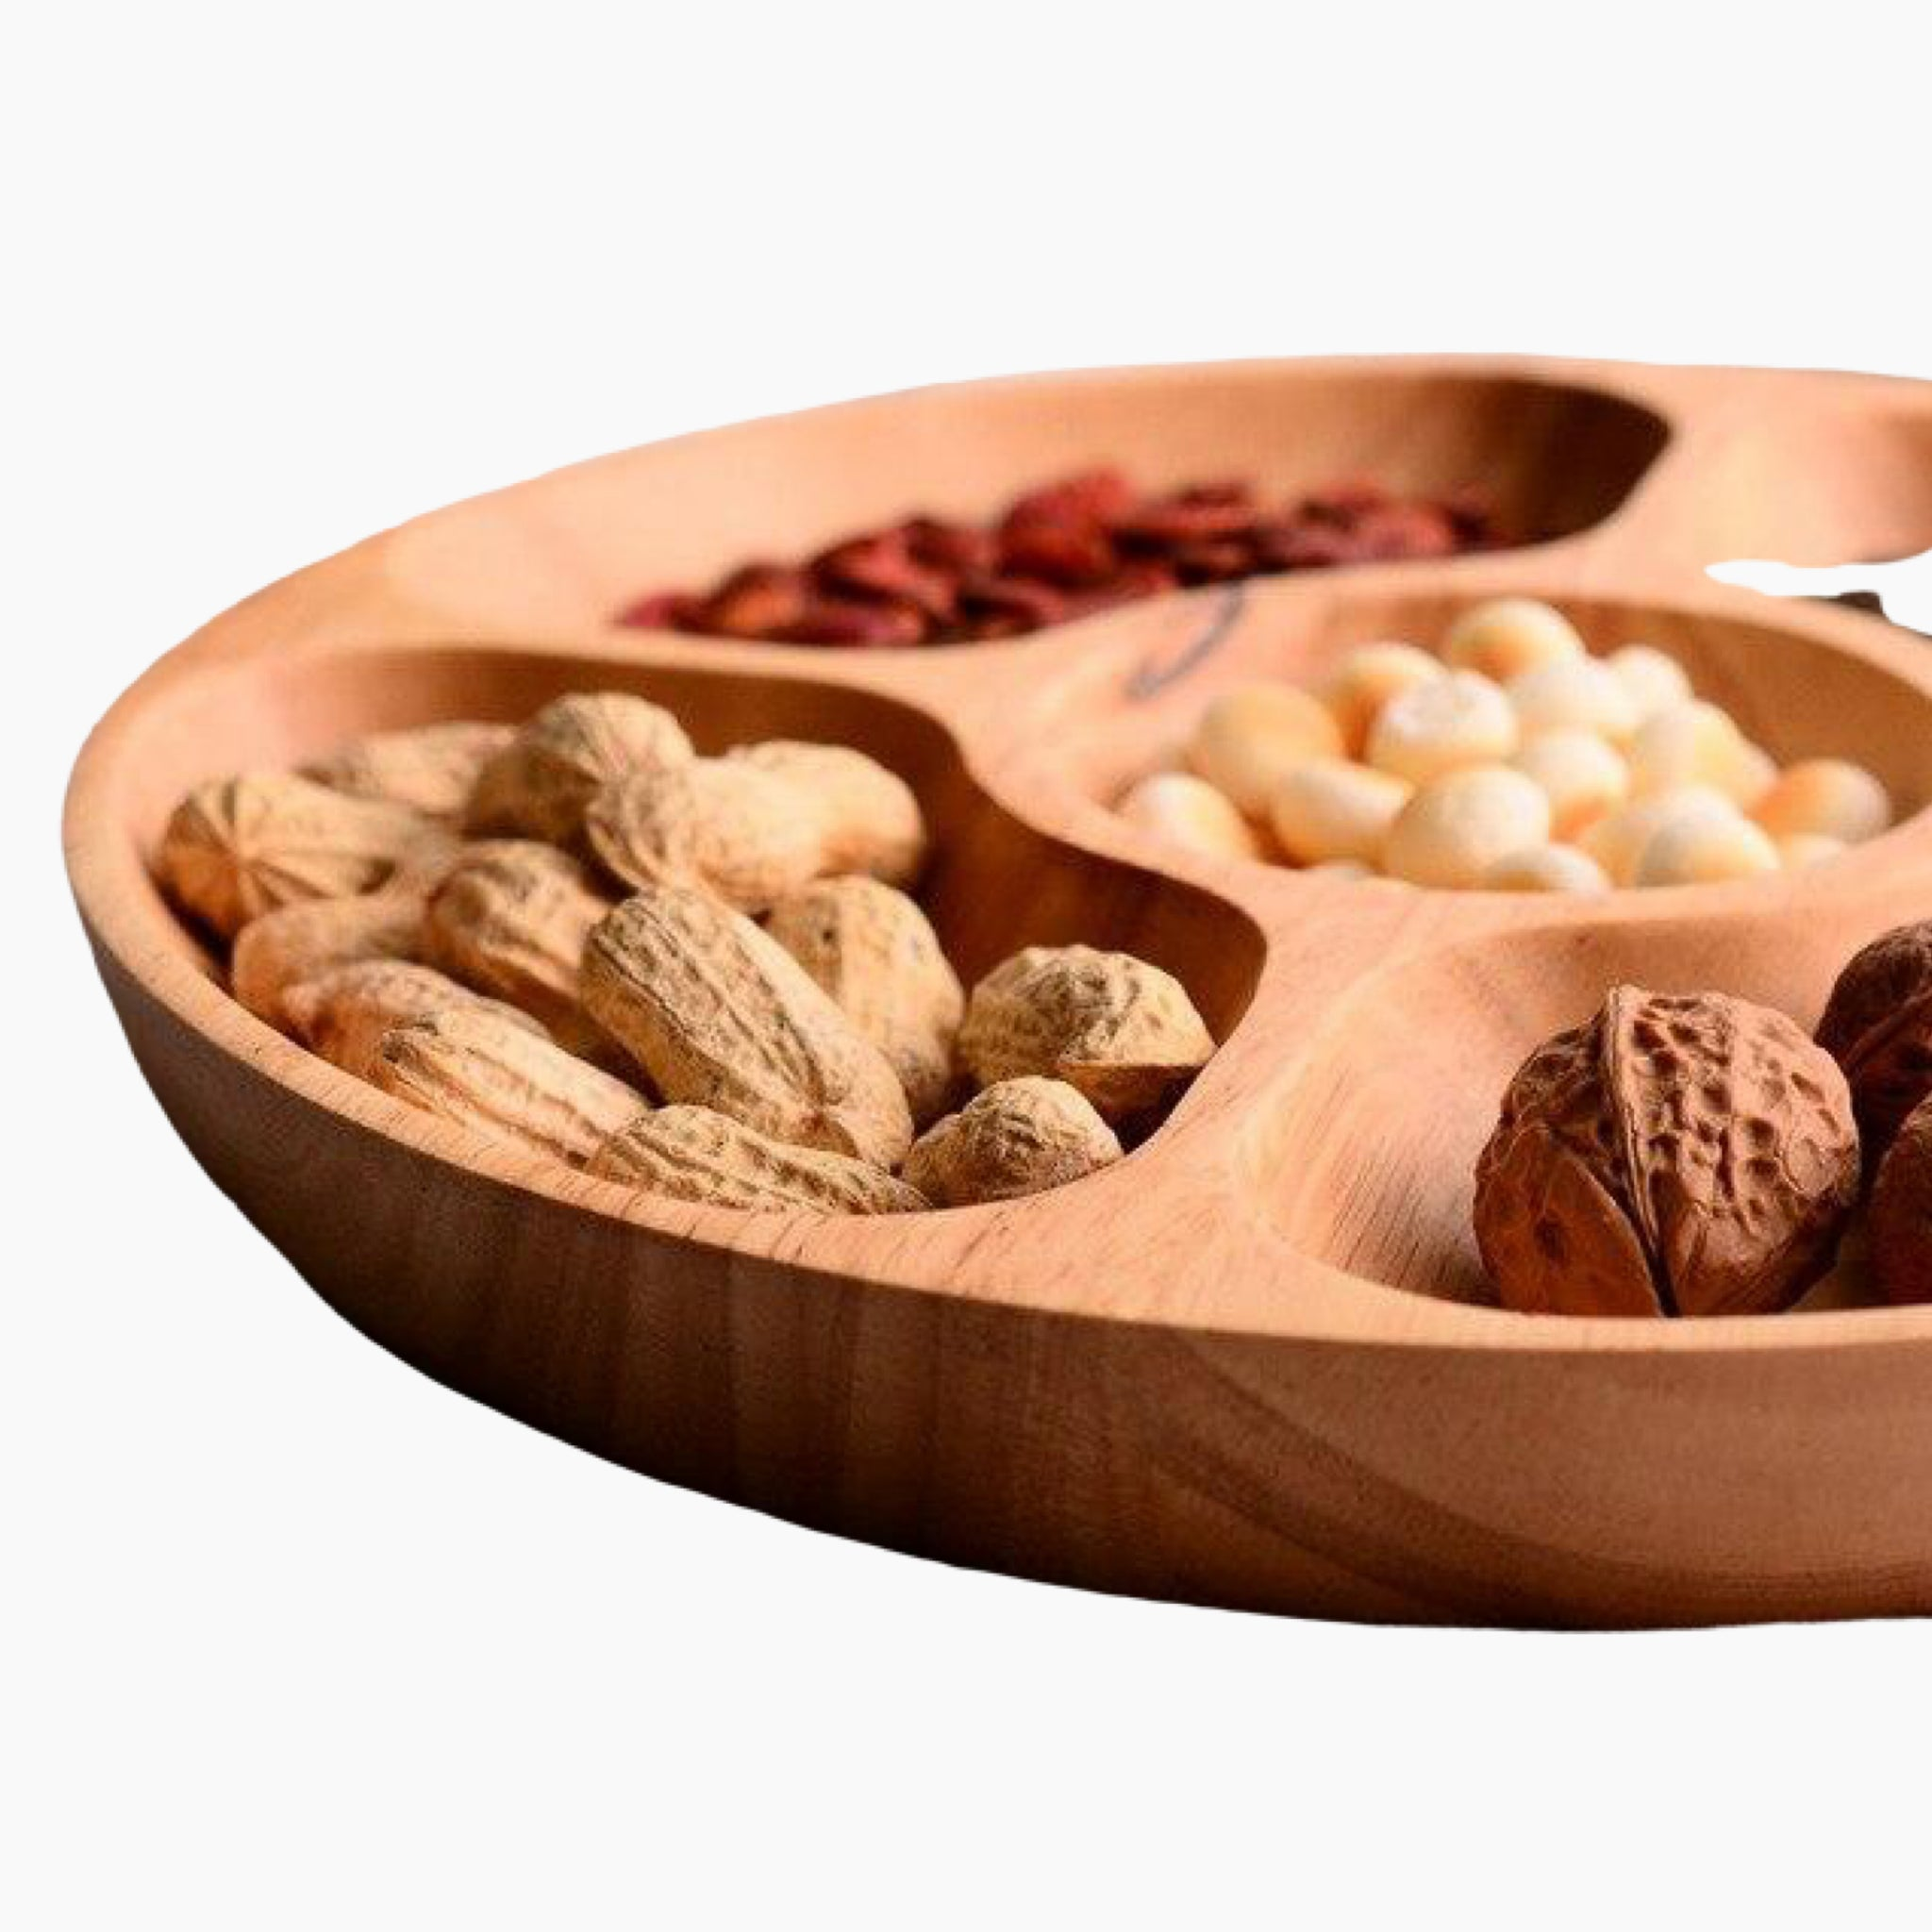 Wooden Chip and Dip Serving Fruit Snack Tray Food Snacks Nibbles Platter Trays Plate BBQ Outdoor Party Occasion Serveware Kitchen Home Restaurant Tool Detail